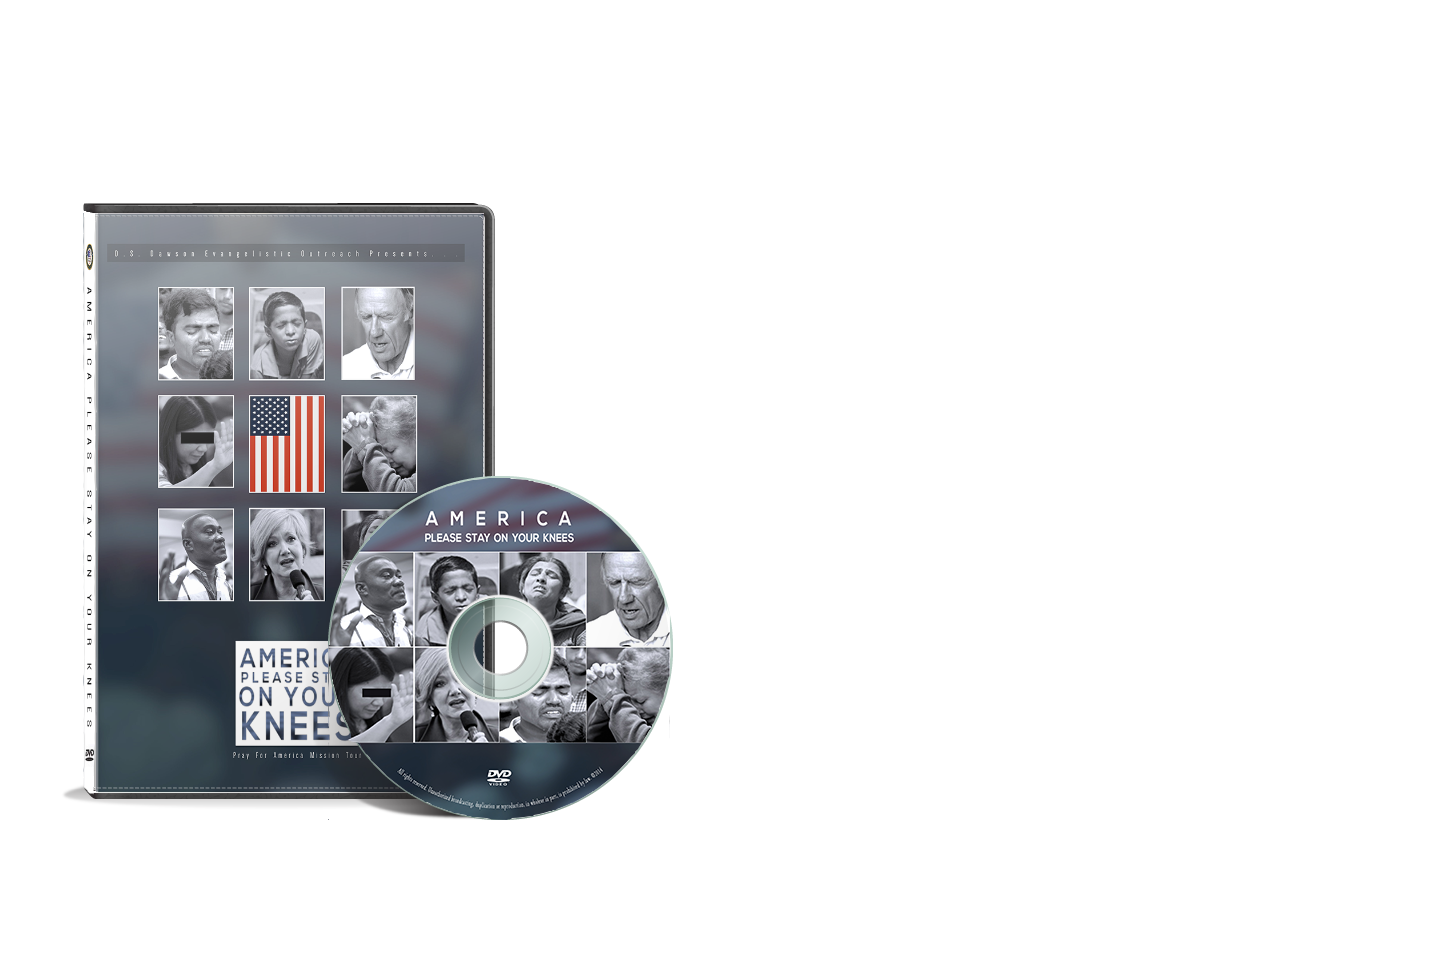 DVD_Cover_PSD_Template